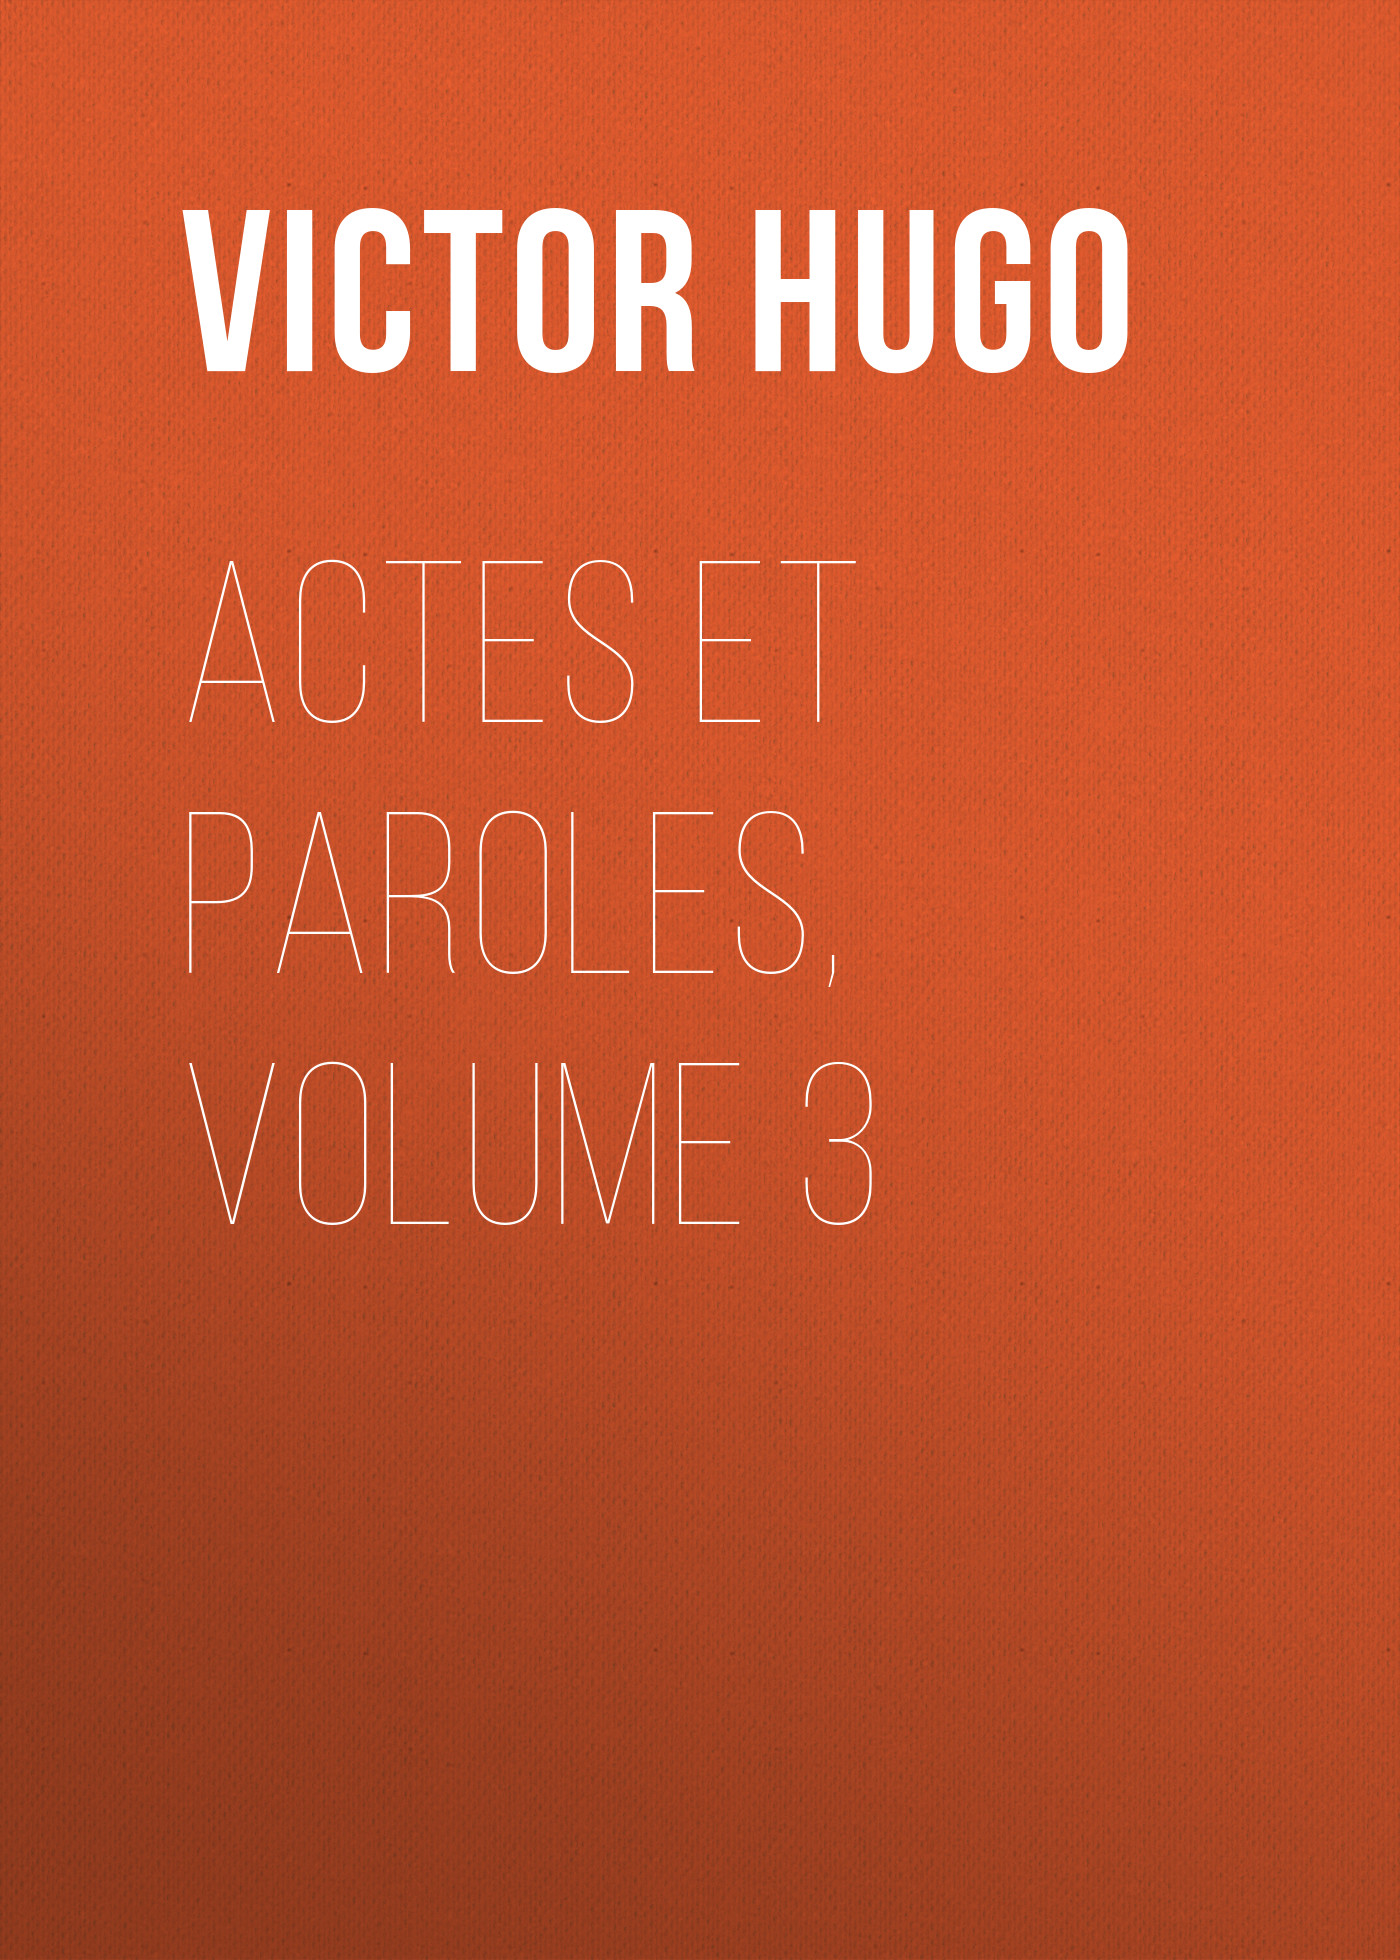 Виктор Мари Гюго Actes et Paroles, Volume 3 paroles